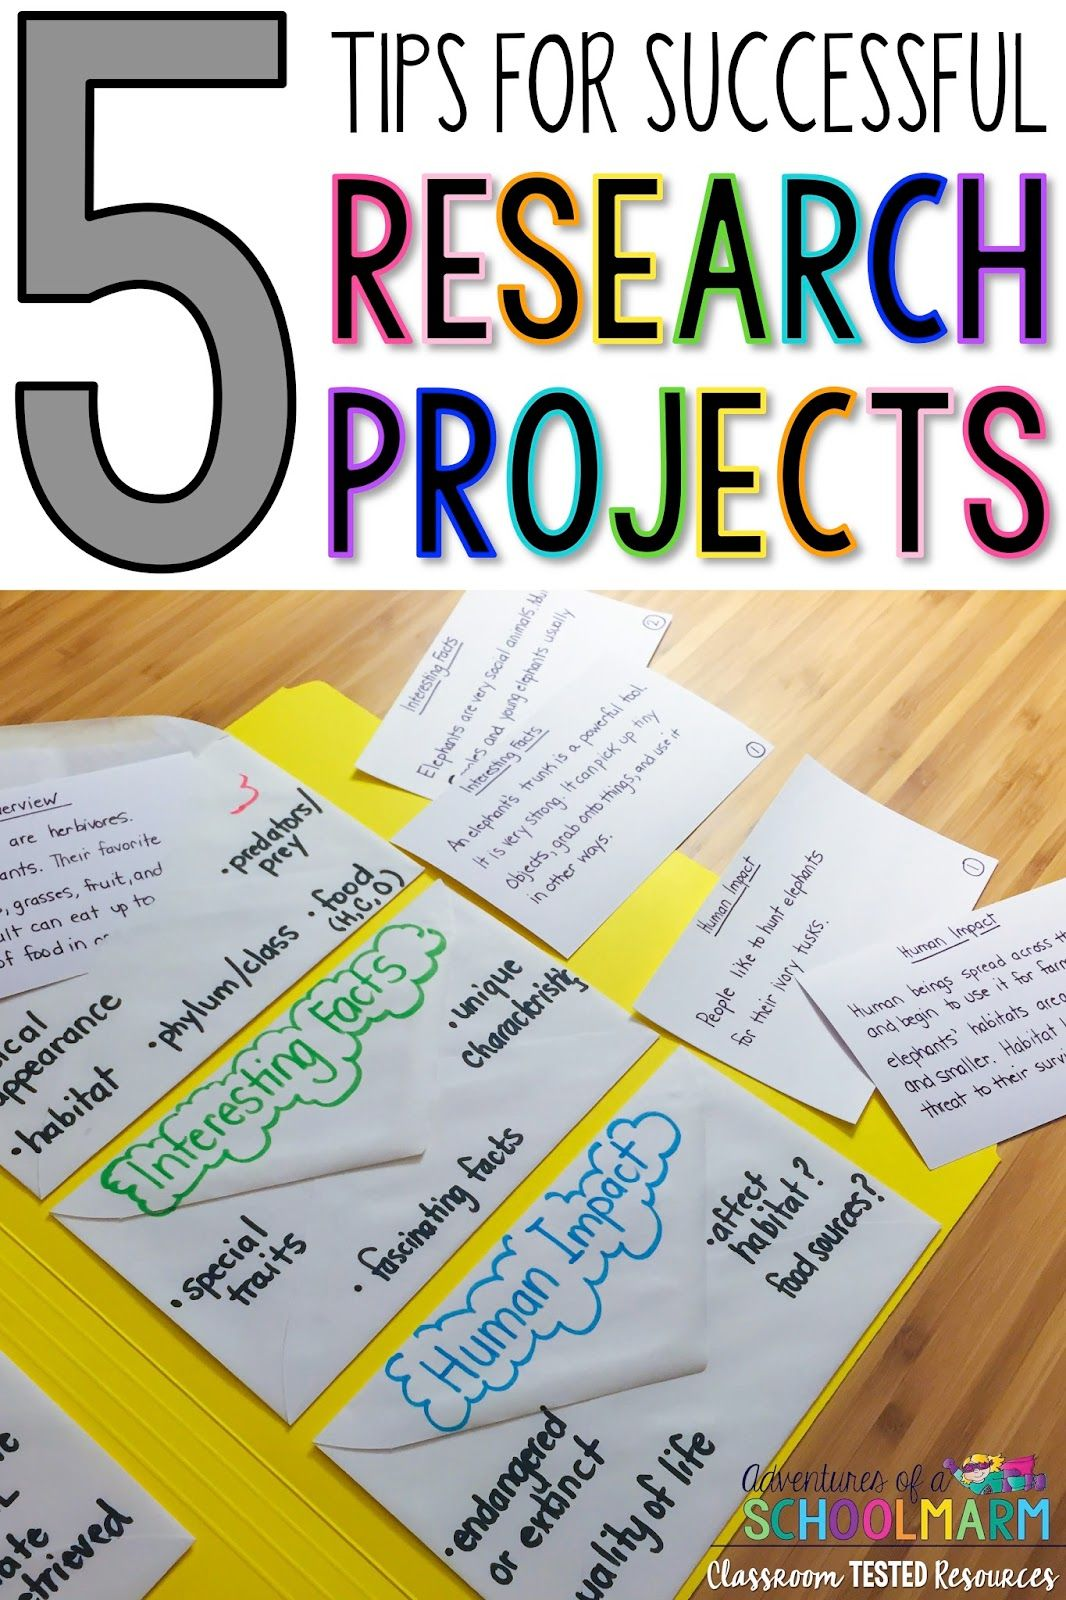 5 Tips For Successful Research Projects